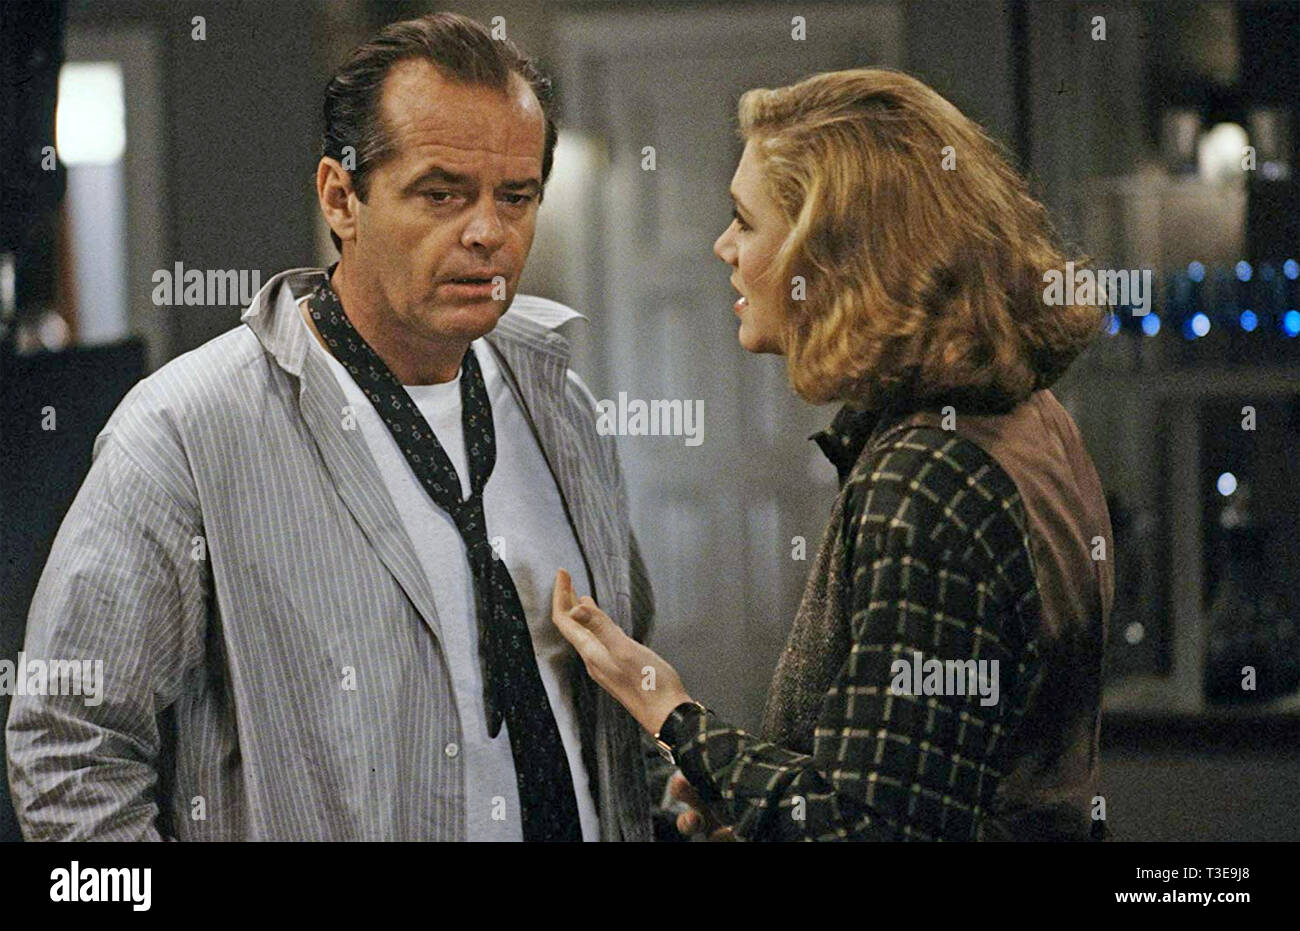 PRIZZI'S HONOR 1985 ABC MOTION PICTURES film with Kathleen Turner and Jack Nicholson - Stock Image